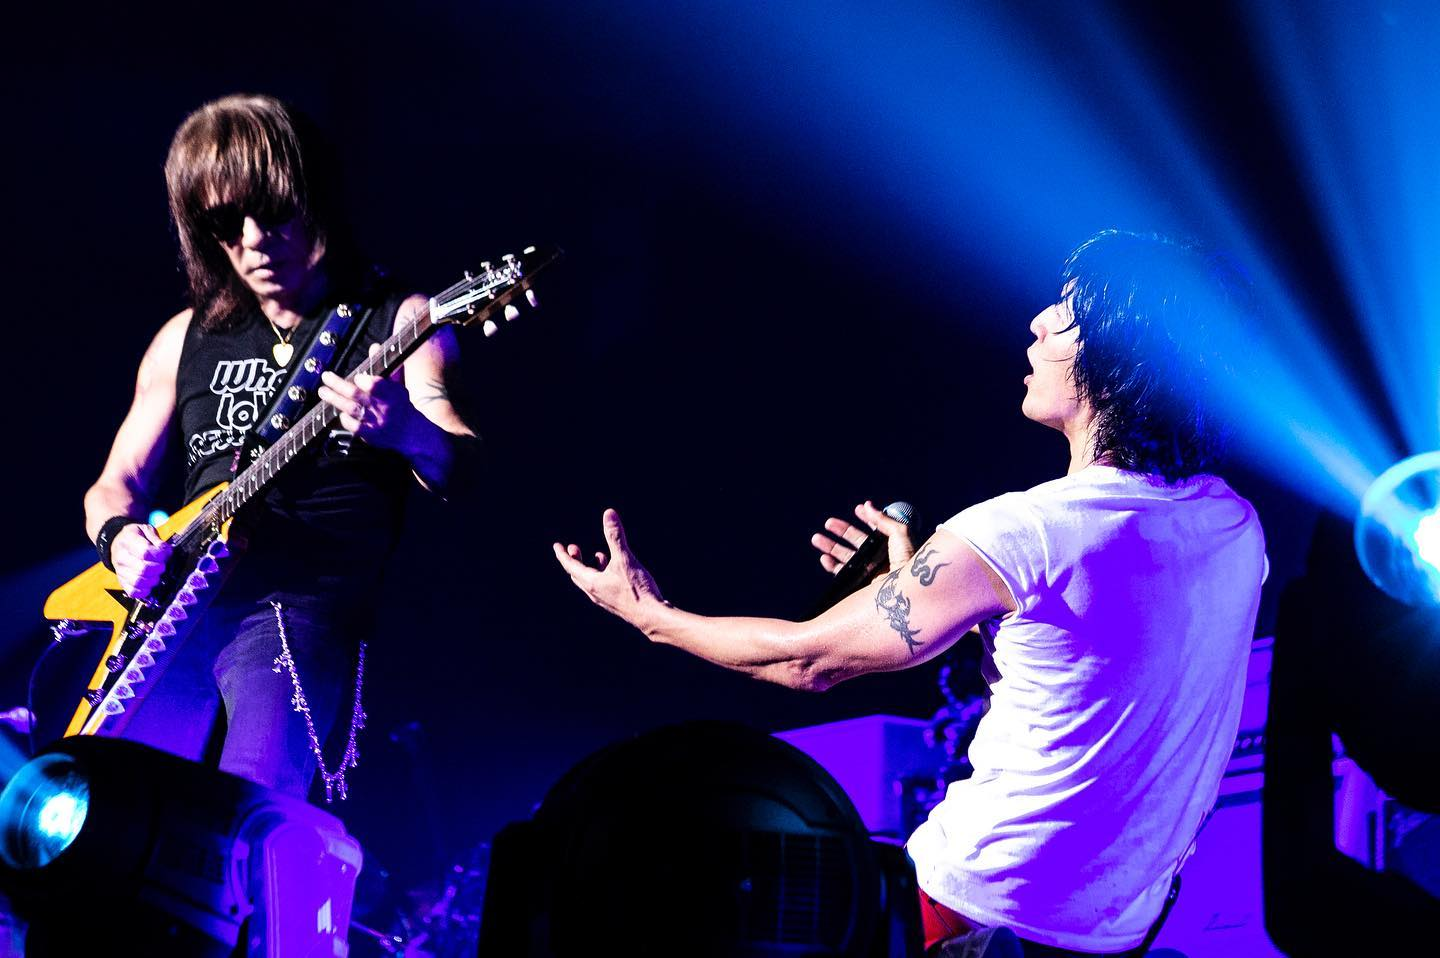 『B'z LIVE-GYM 2019 -Whole Lotta NEW LOVE-』のステージ写真